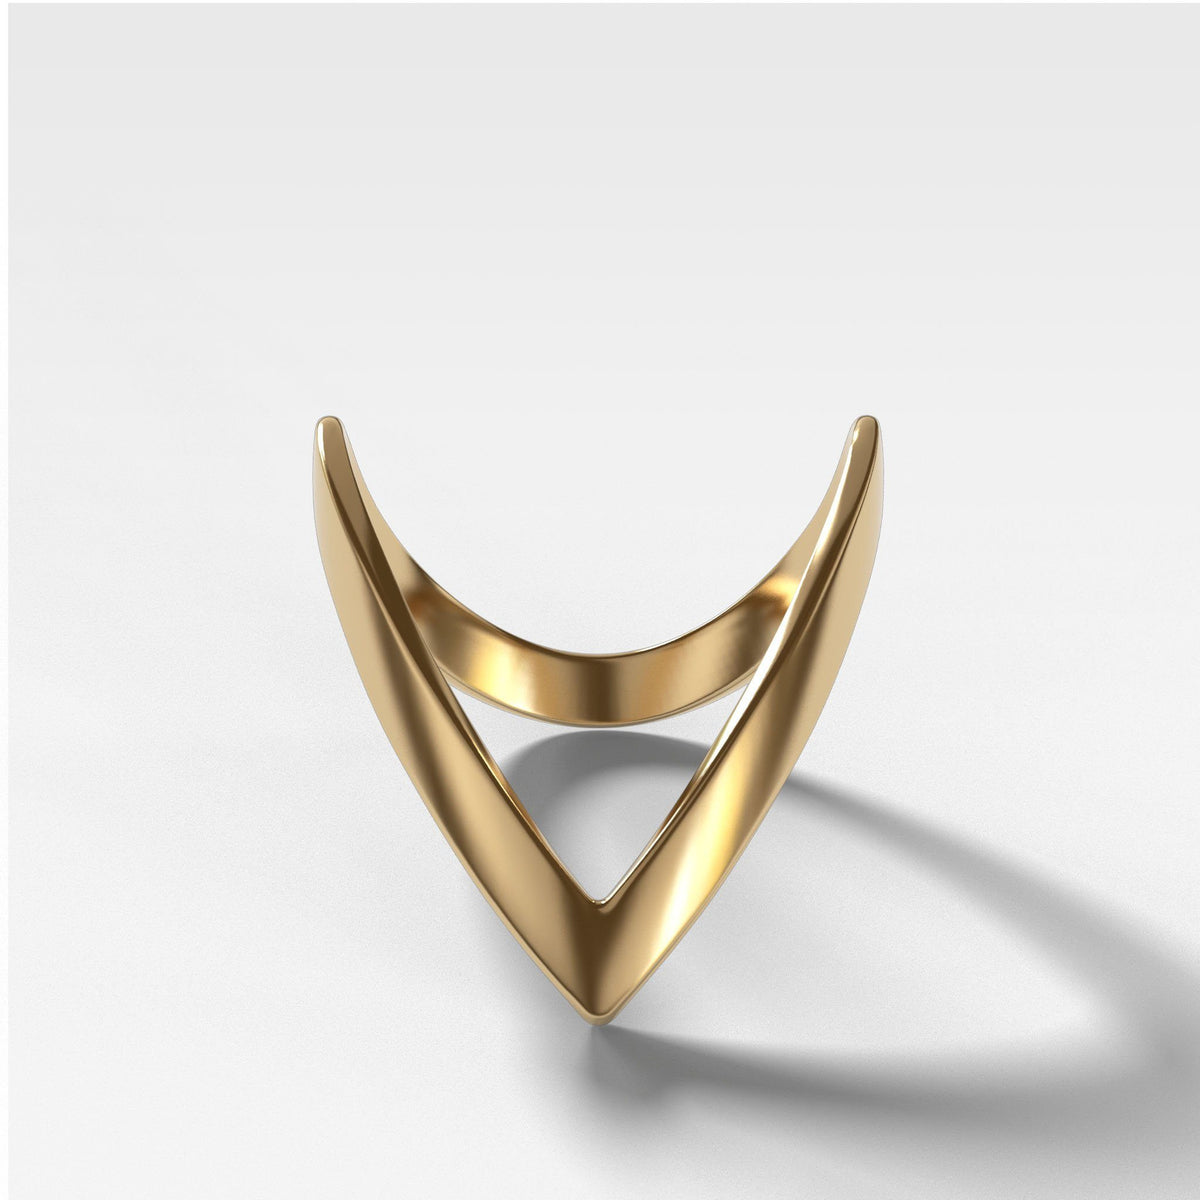 Chevron Band Rings Good Stone Inc Yellow Gold 14k